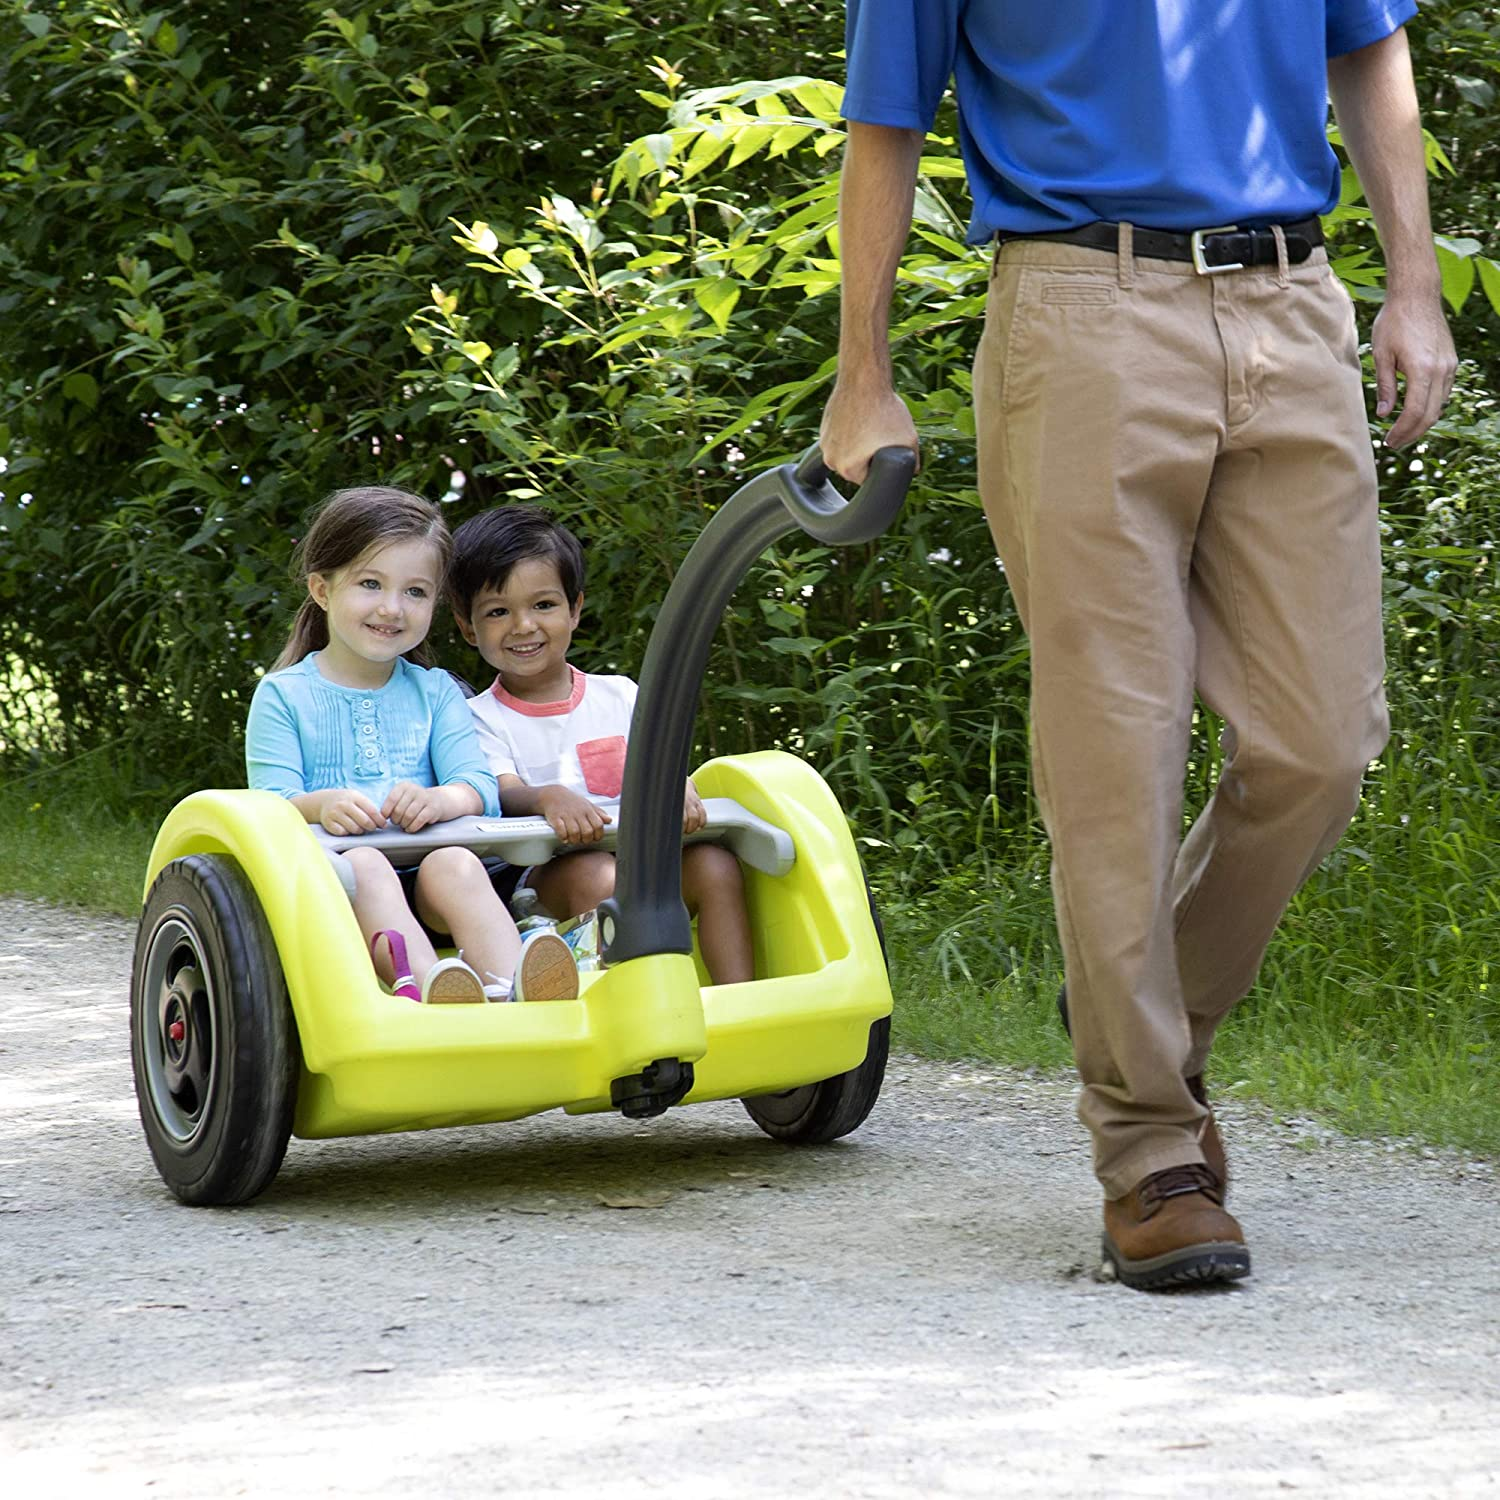 Simplay3 Deluxe 2 Wheel Chariot Style Toddler Child Wagon Hiking Carrier with Long Handle for 2 Children